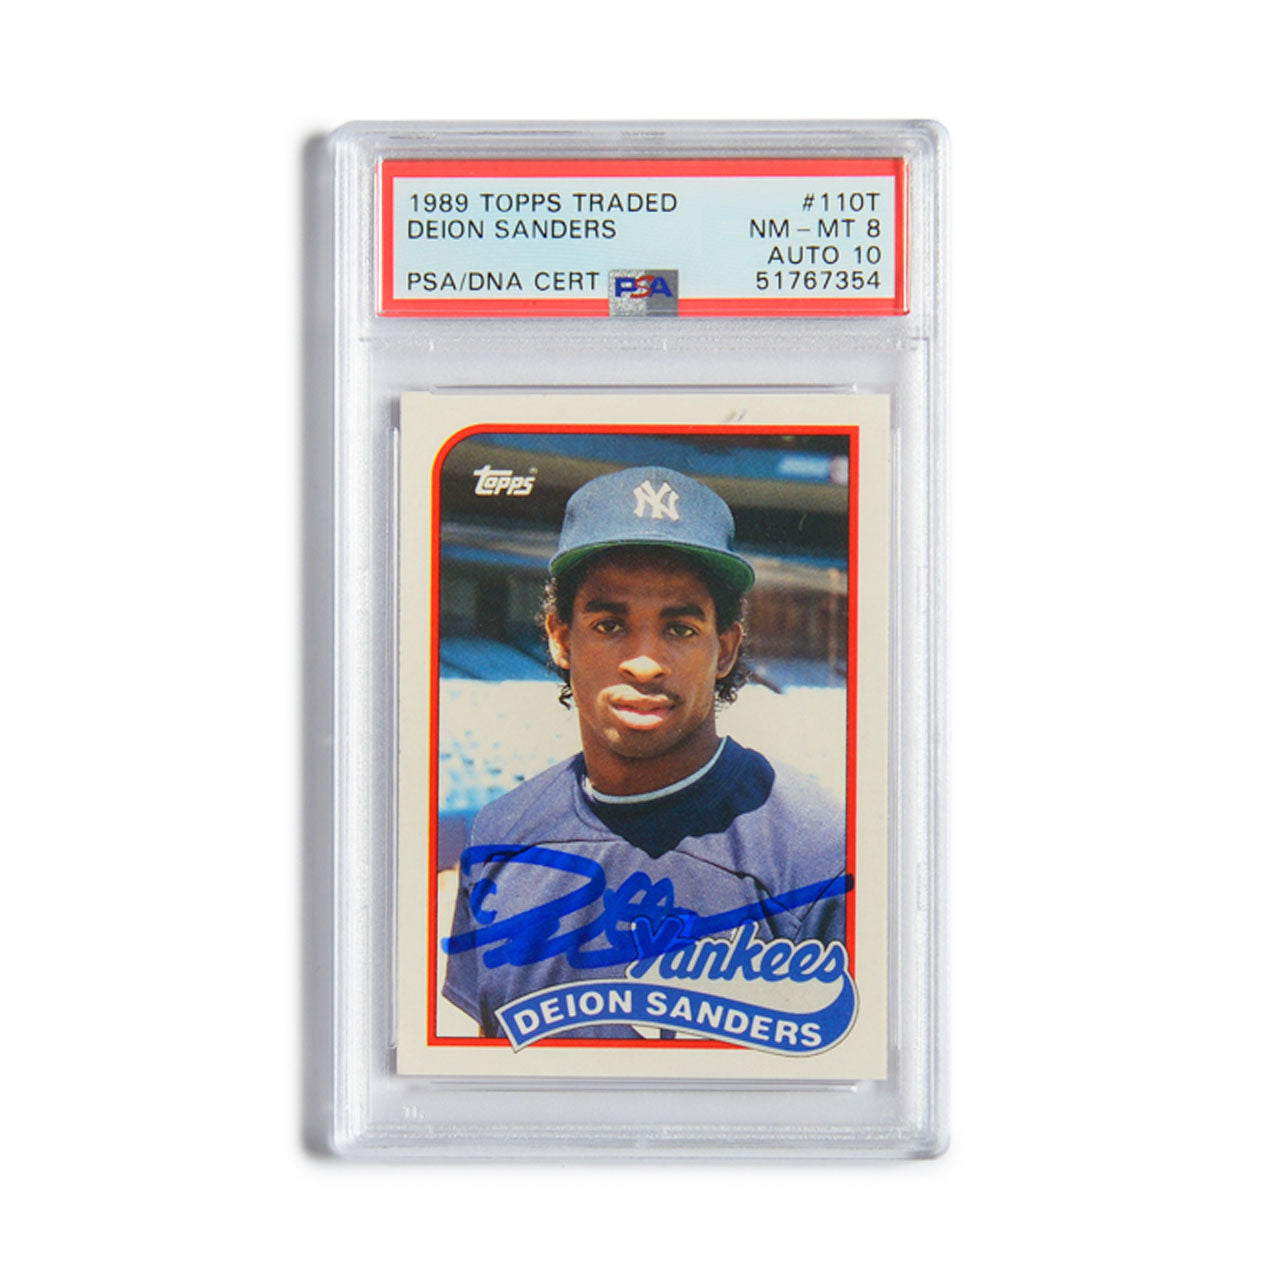 1989 Topps Traded Deion Sanders Autographed Rookie Card